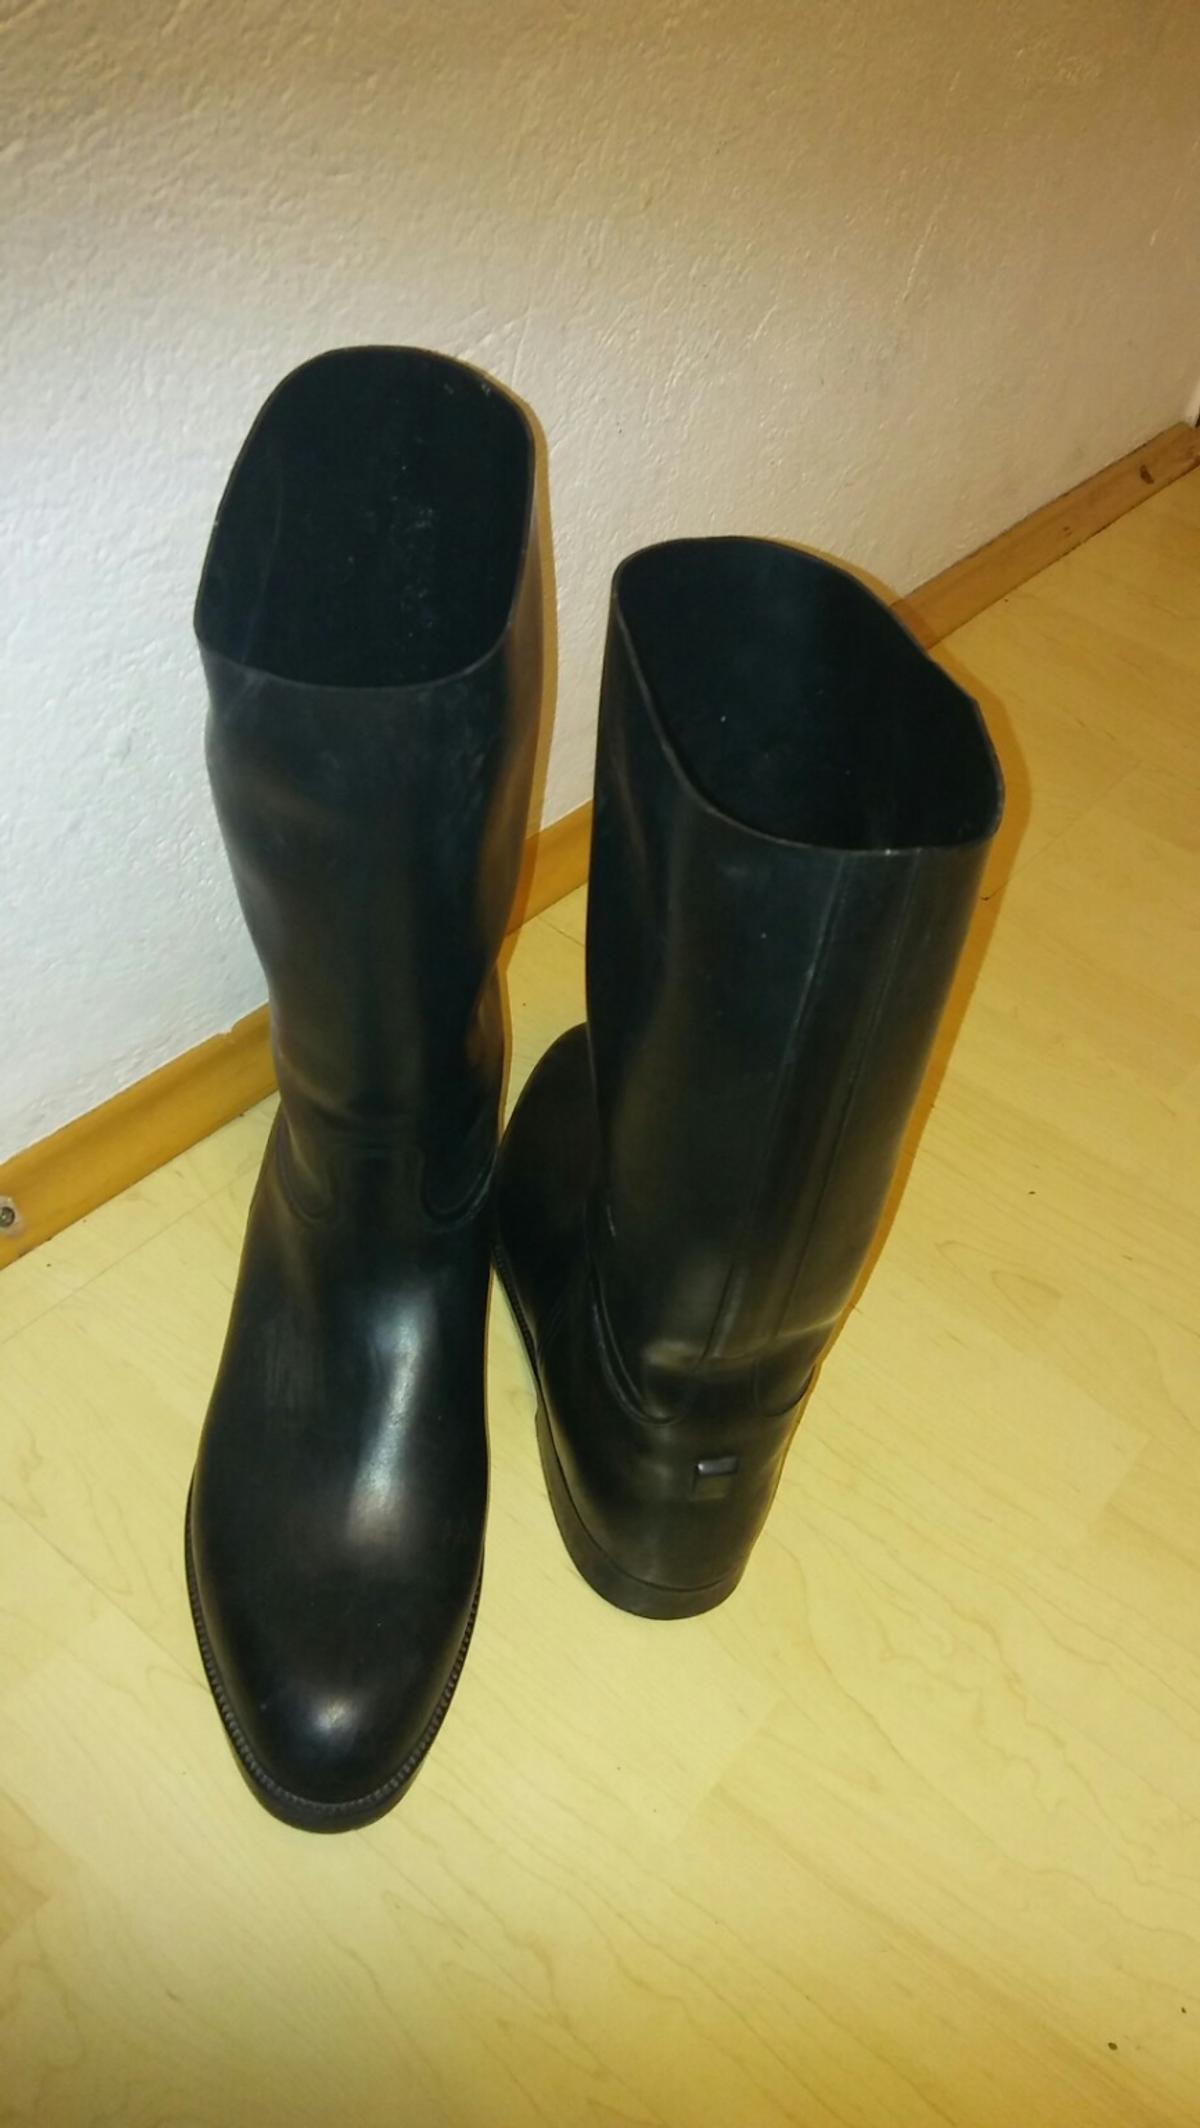 competitive price 71f37 6b3ac Schwarze Gummistiefel Gr. 43 Made in France in 6020 ...